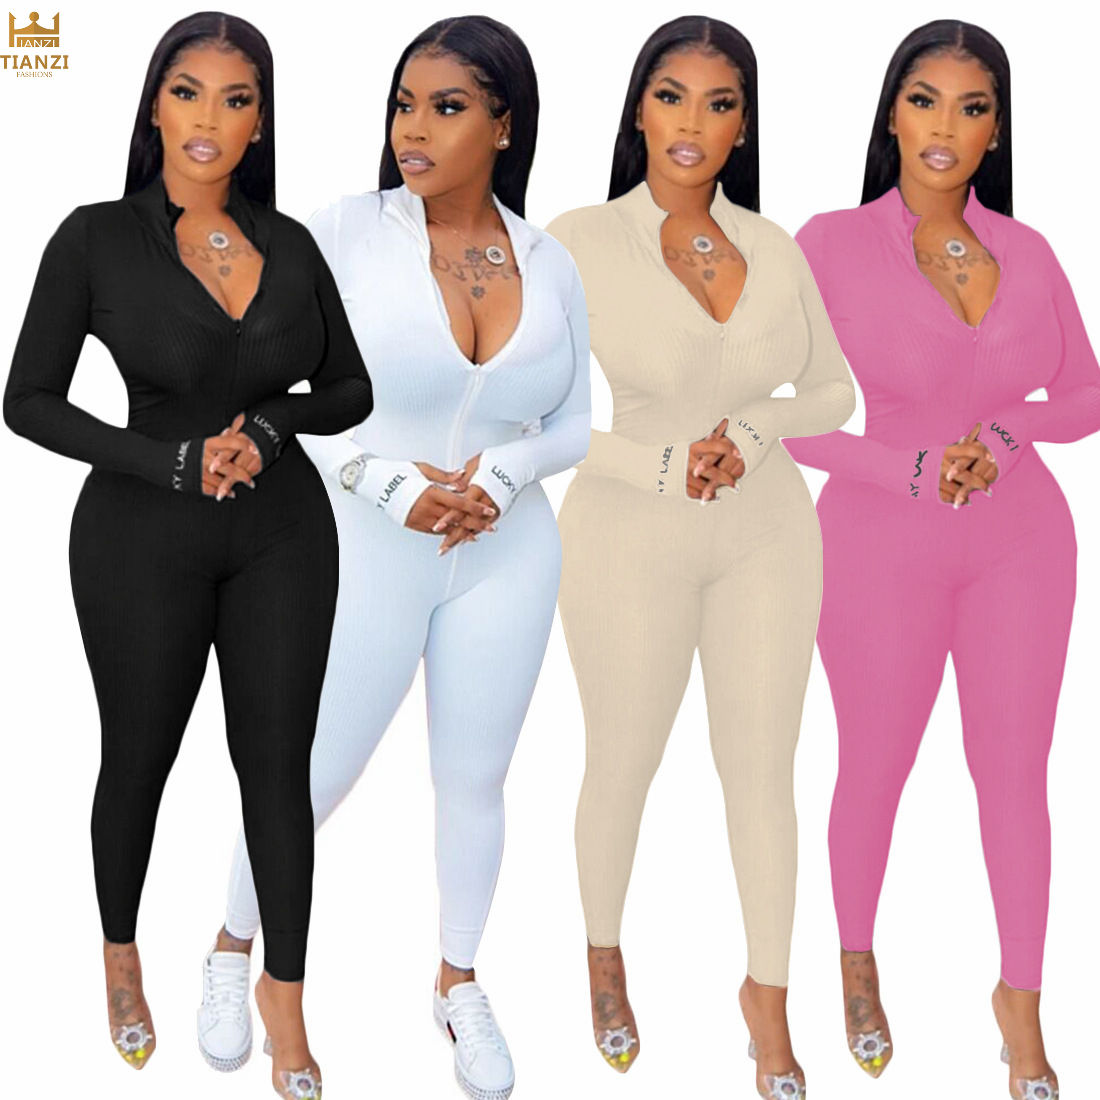 Y3348 <span class=keywords><strong>Jumpsuit</strong></span> <span class=keywords><strong>Wanita</strong></span> Lengan Panjang, <span class=keywords><strong>Jumpsuit</strong></span> Bodycon Ritsleting Solid Modis